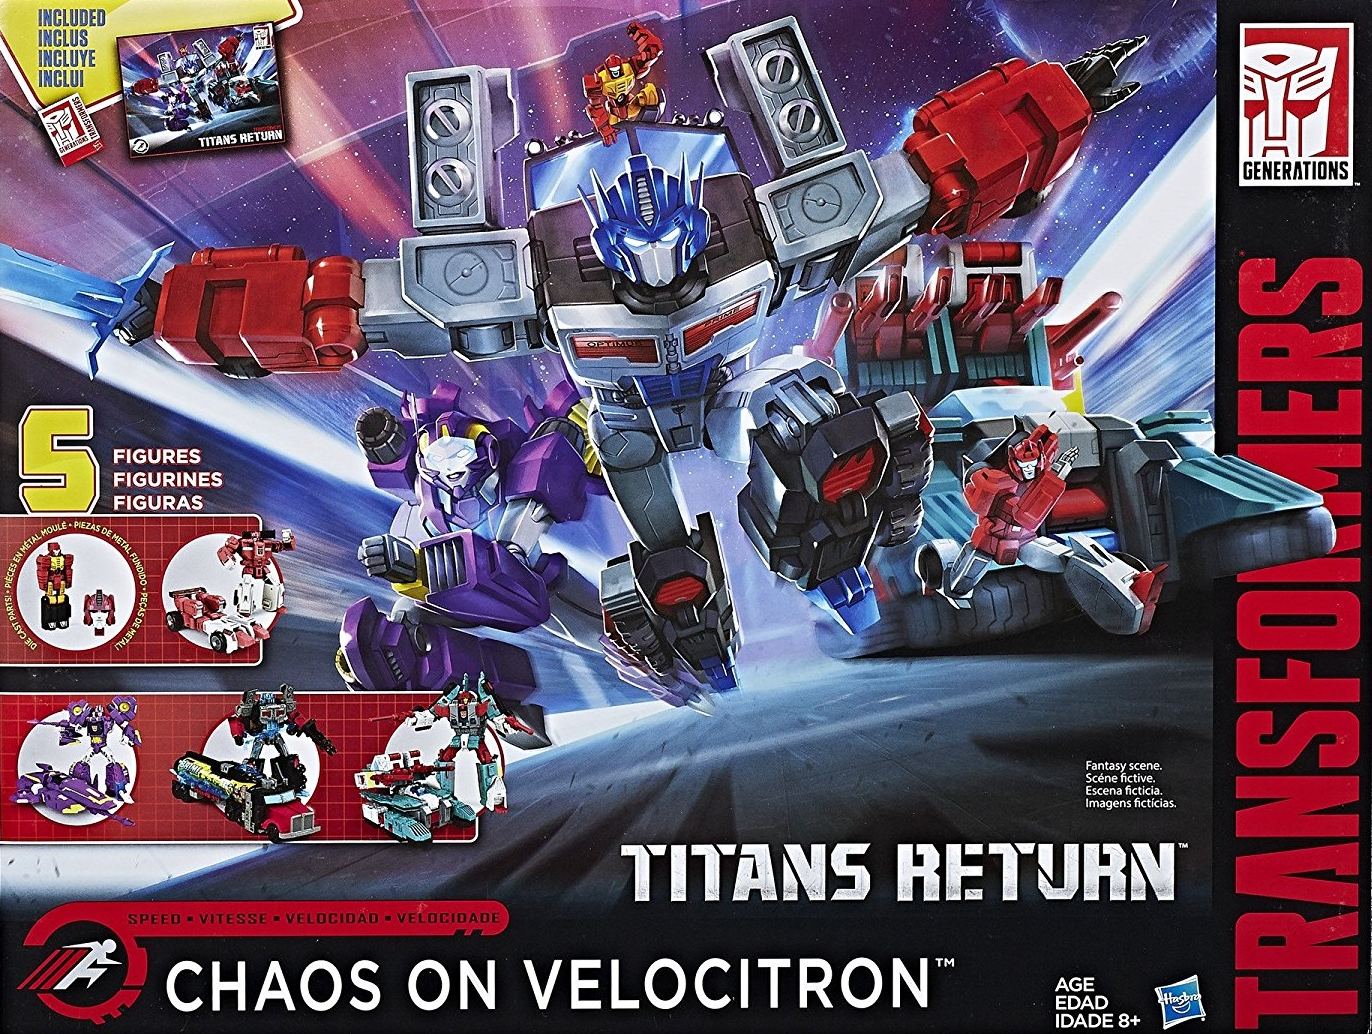 Chaos on Velocitron